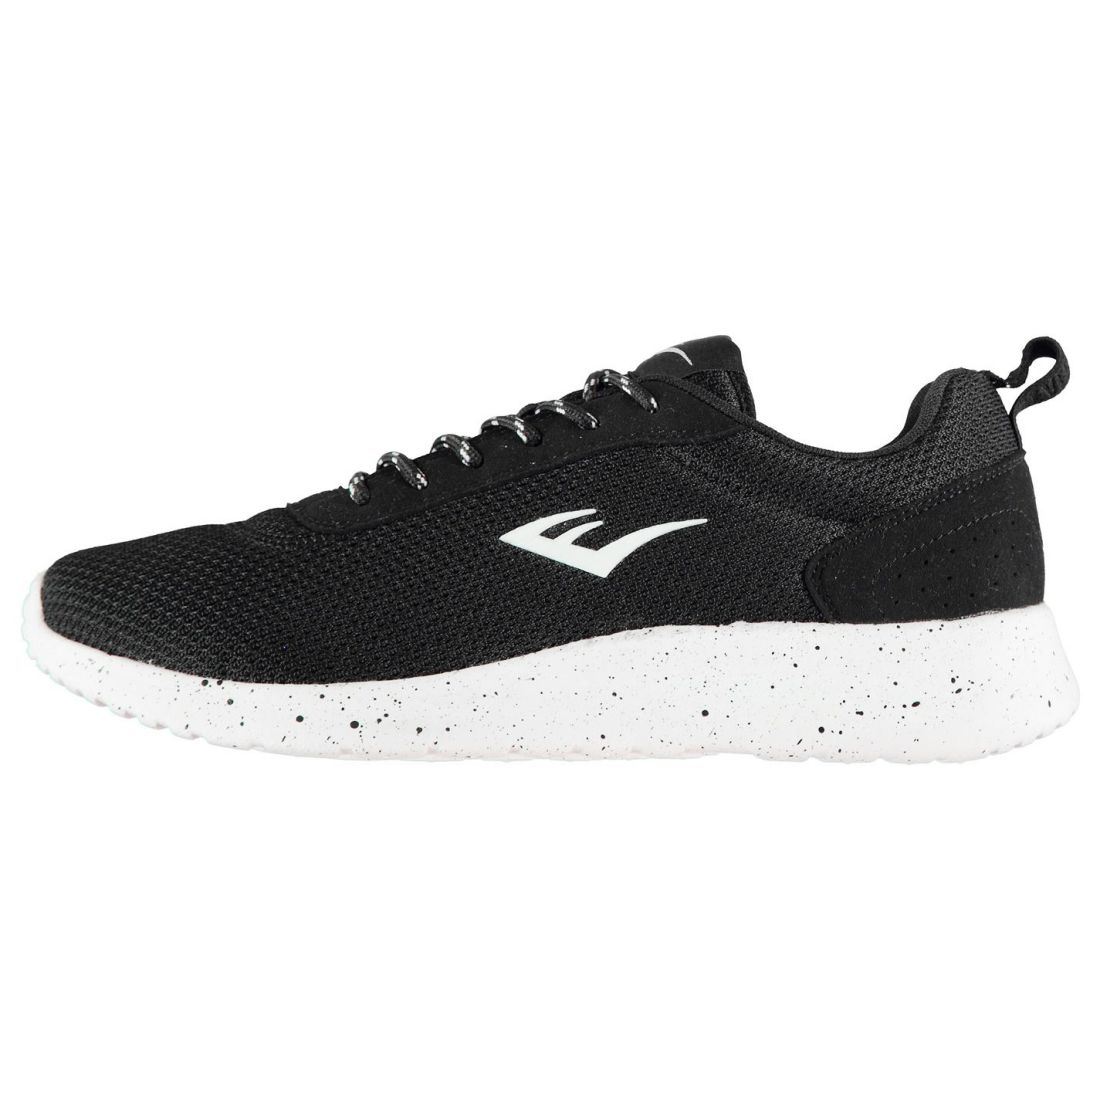 46a7259c3f31 Details about Everlast Mens Sama Run Trainers Sports Shoes Runners Lace Up  Breathable